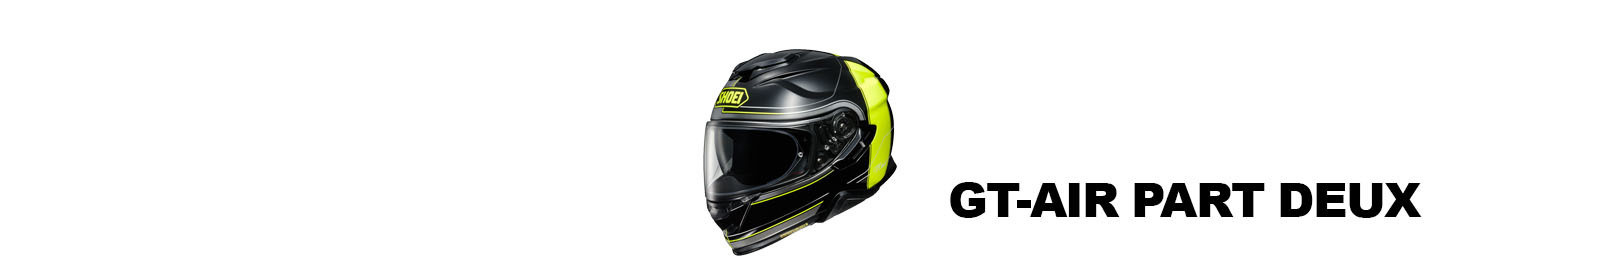 Shoei GT-AIR II Helmets